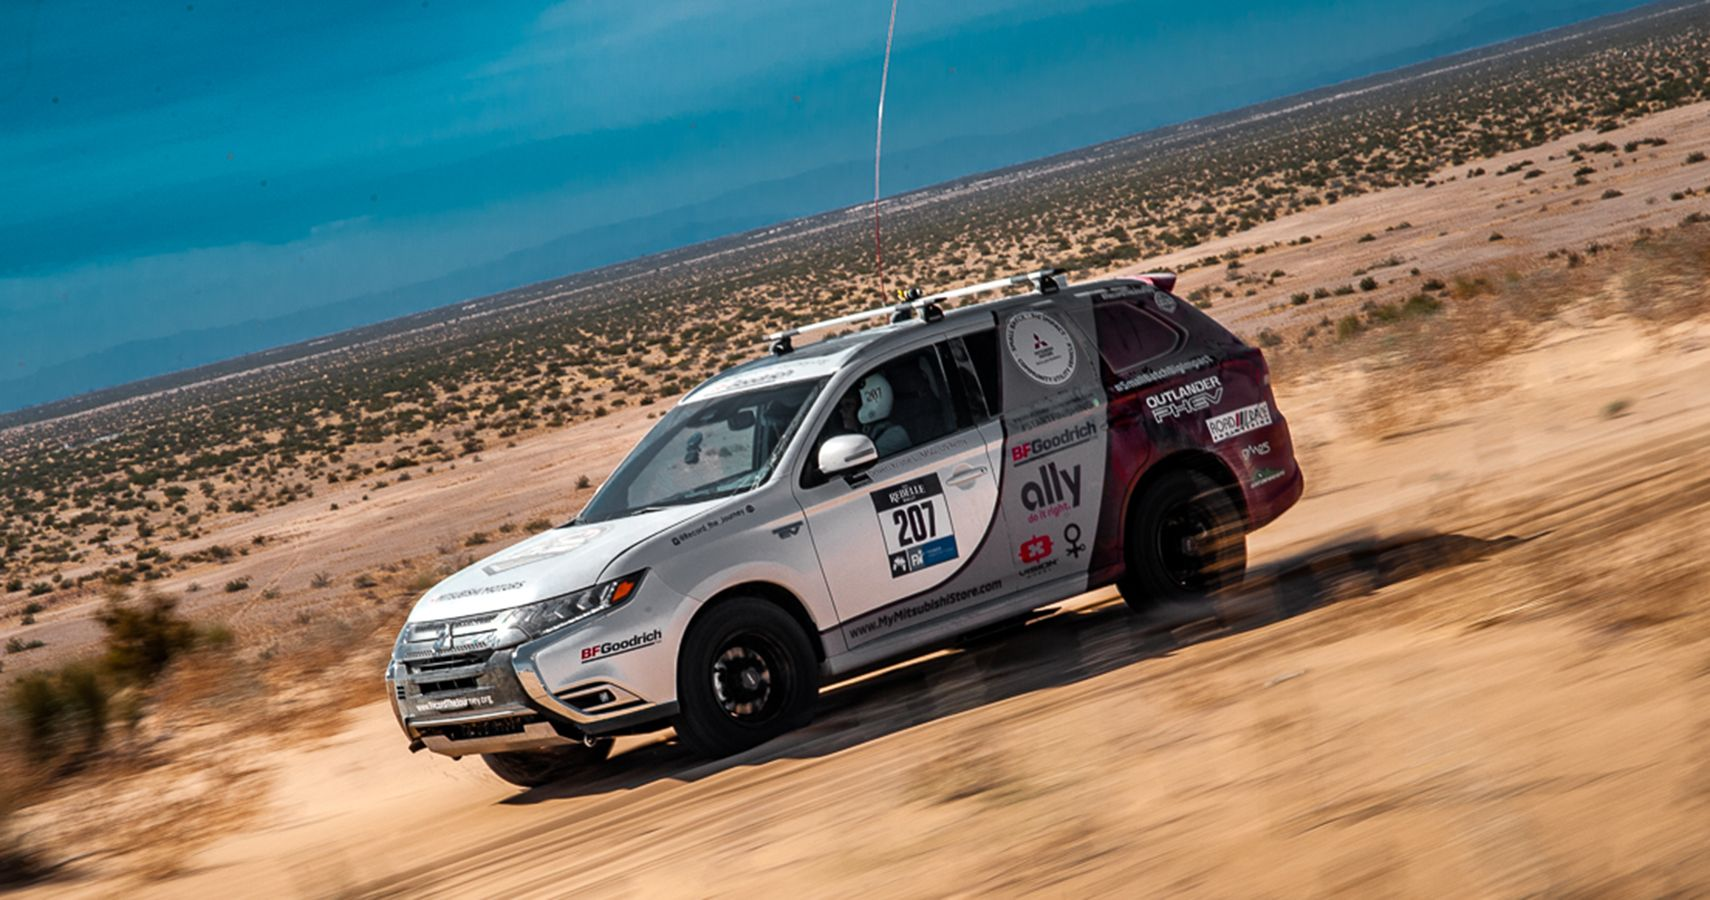 Mitsubishi Outlander Is First Plug-in Hybrid EV To Finish Rebelle Rally